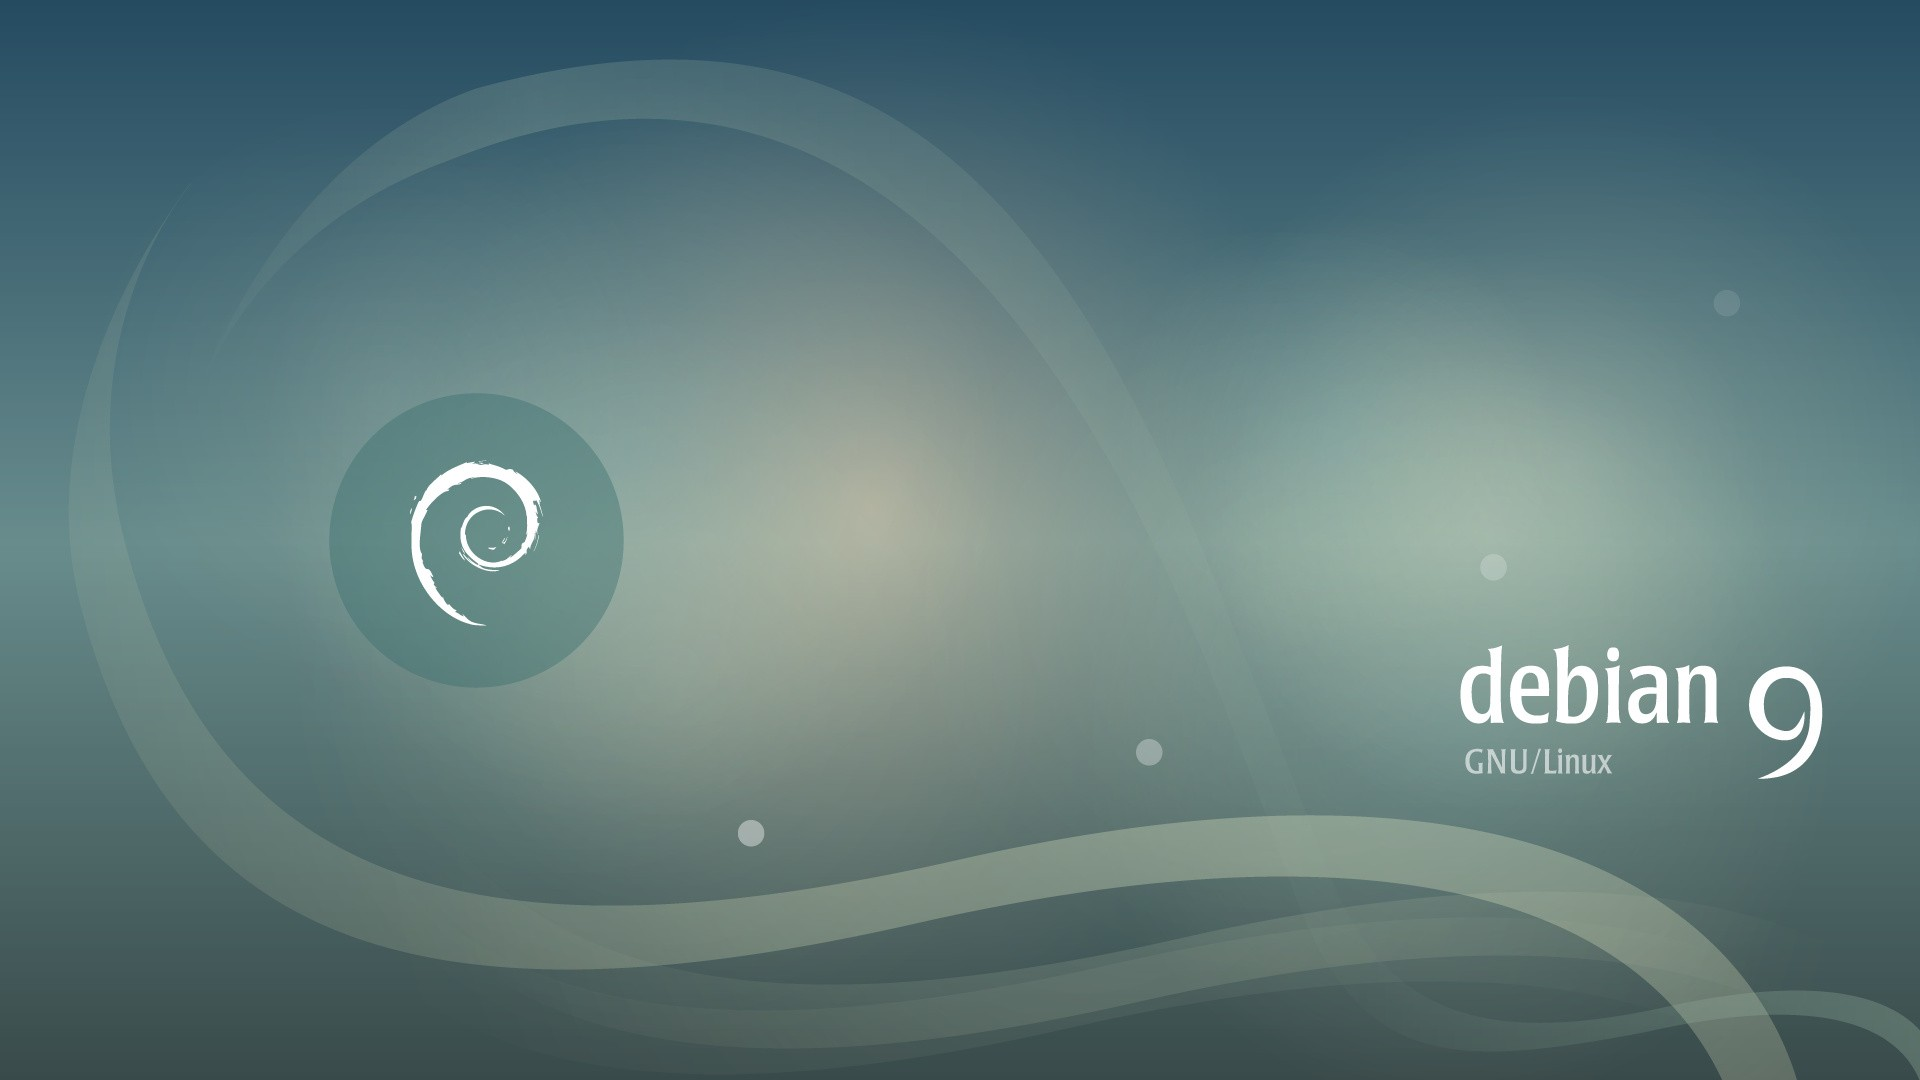 Debian GNU/Linux 9 8 Released with over 180 Security Updates